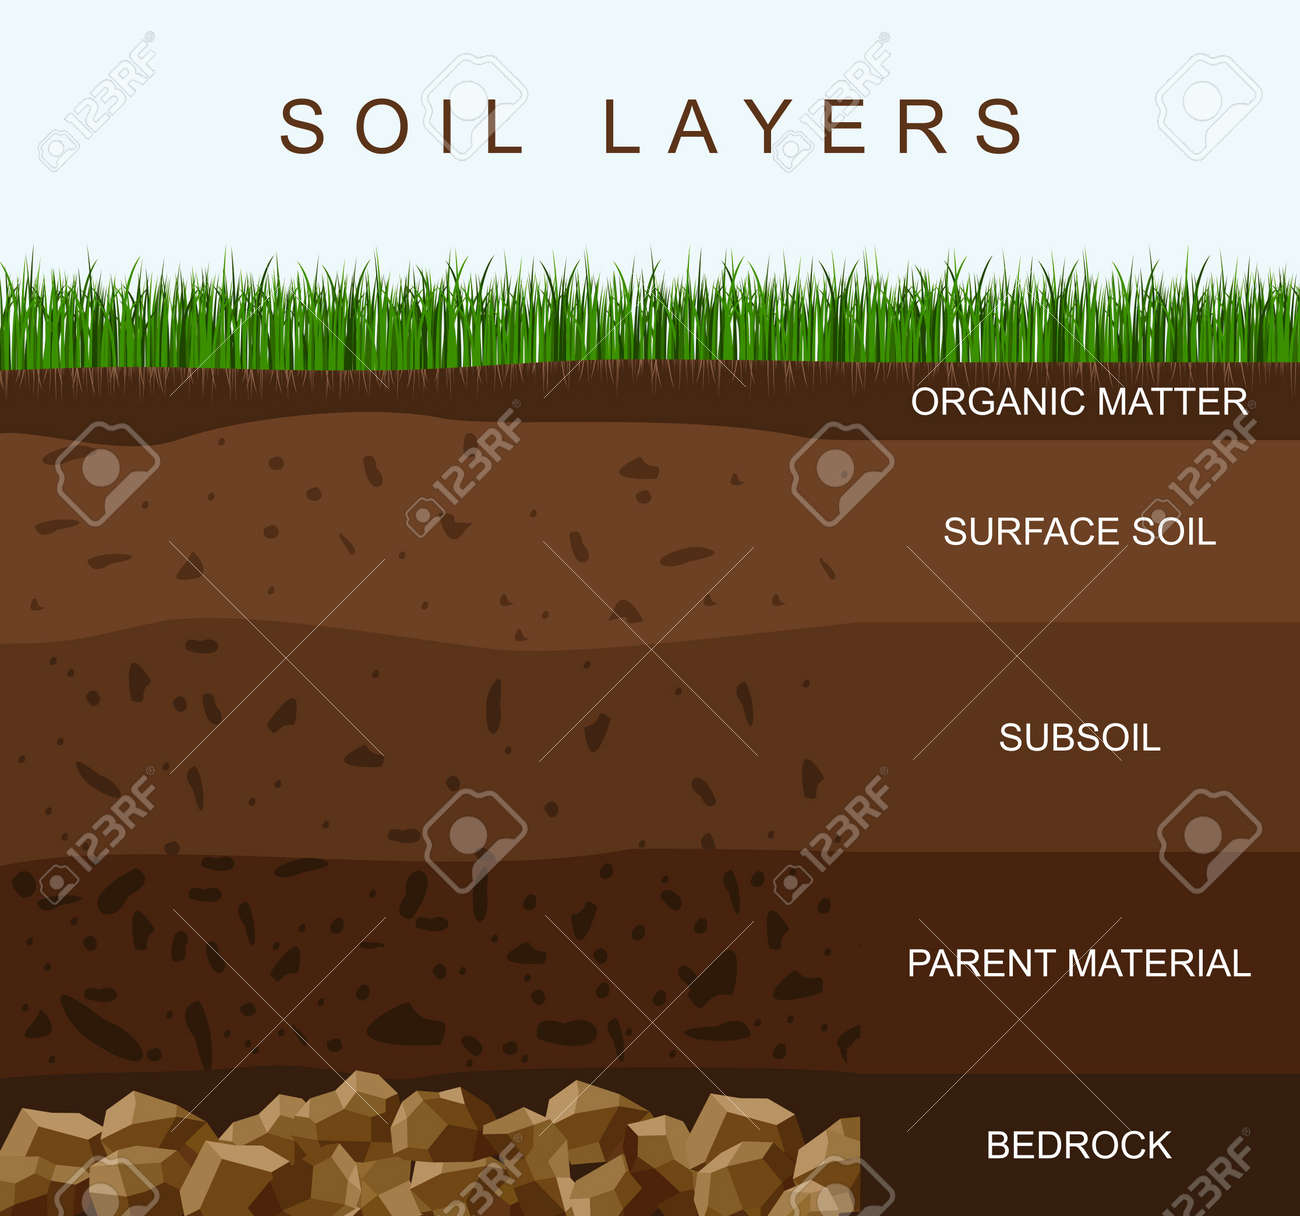 Soil layers diagram earth texture, stones. Ground with green grass on top. Mineral particles, sand, humus and stones, natural fertilizer. Geology infographics. Education for kids. Vector illustration - 158628435